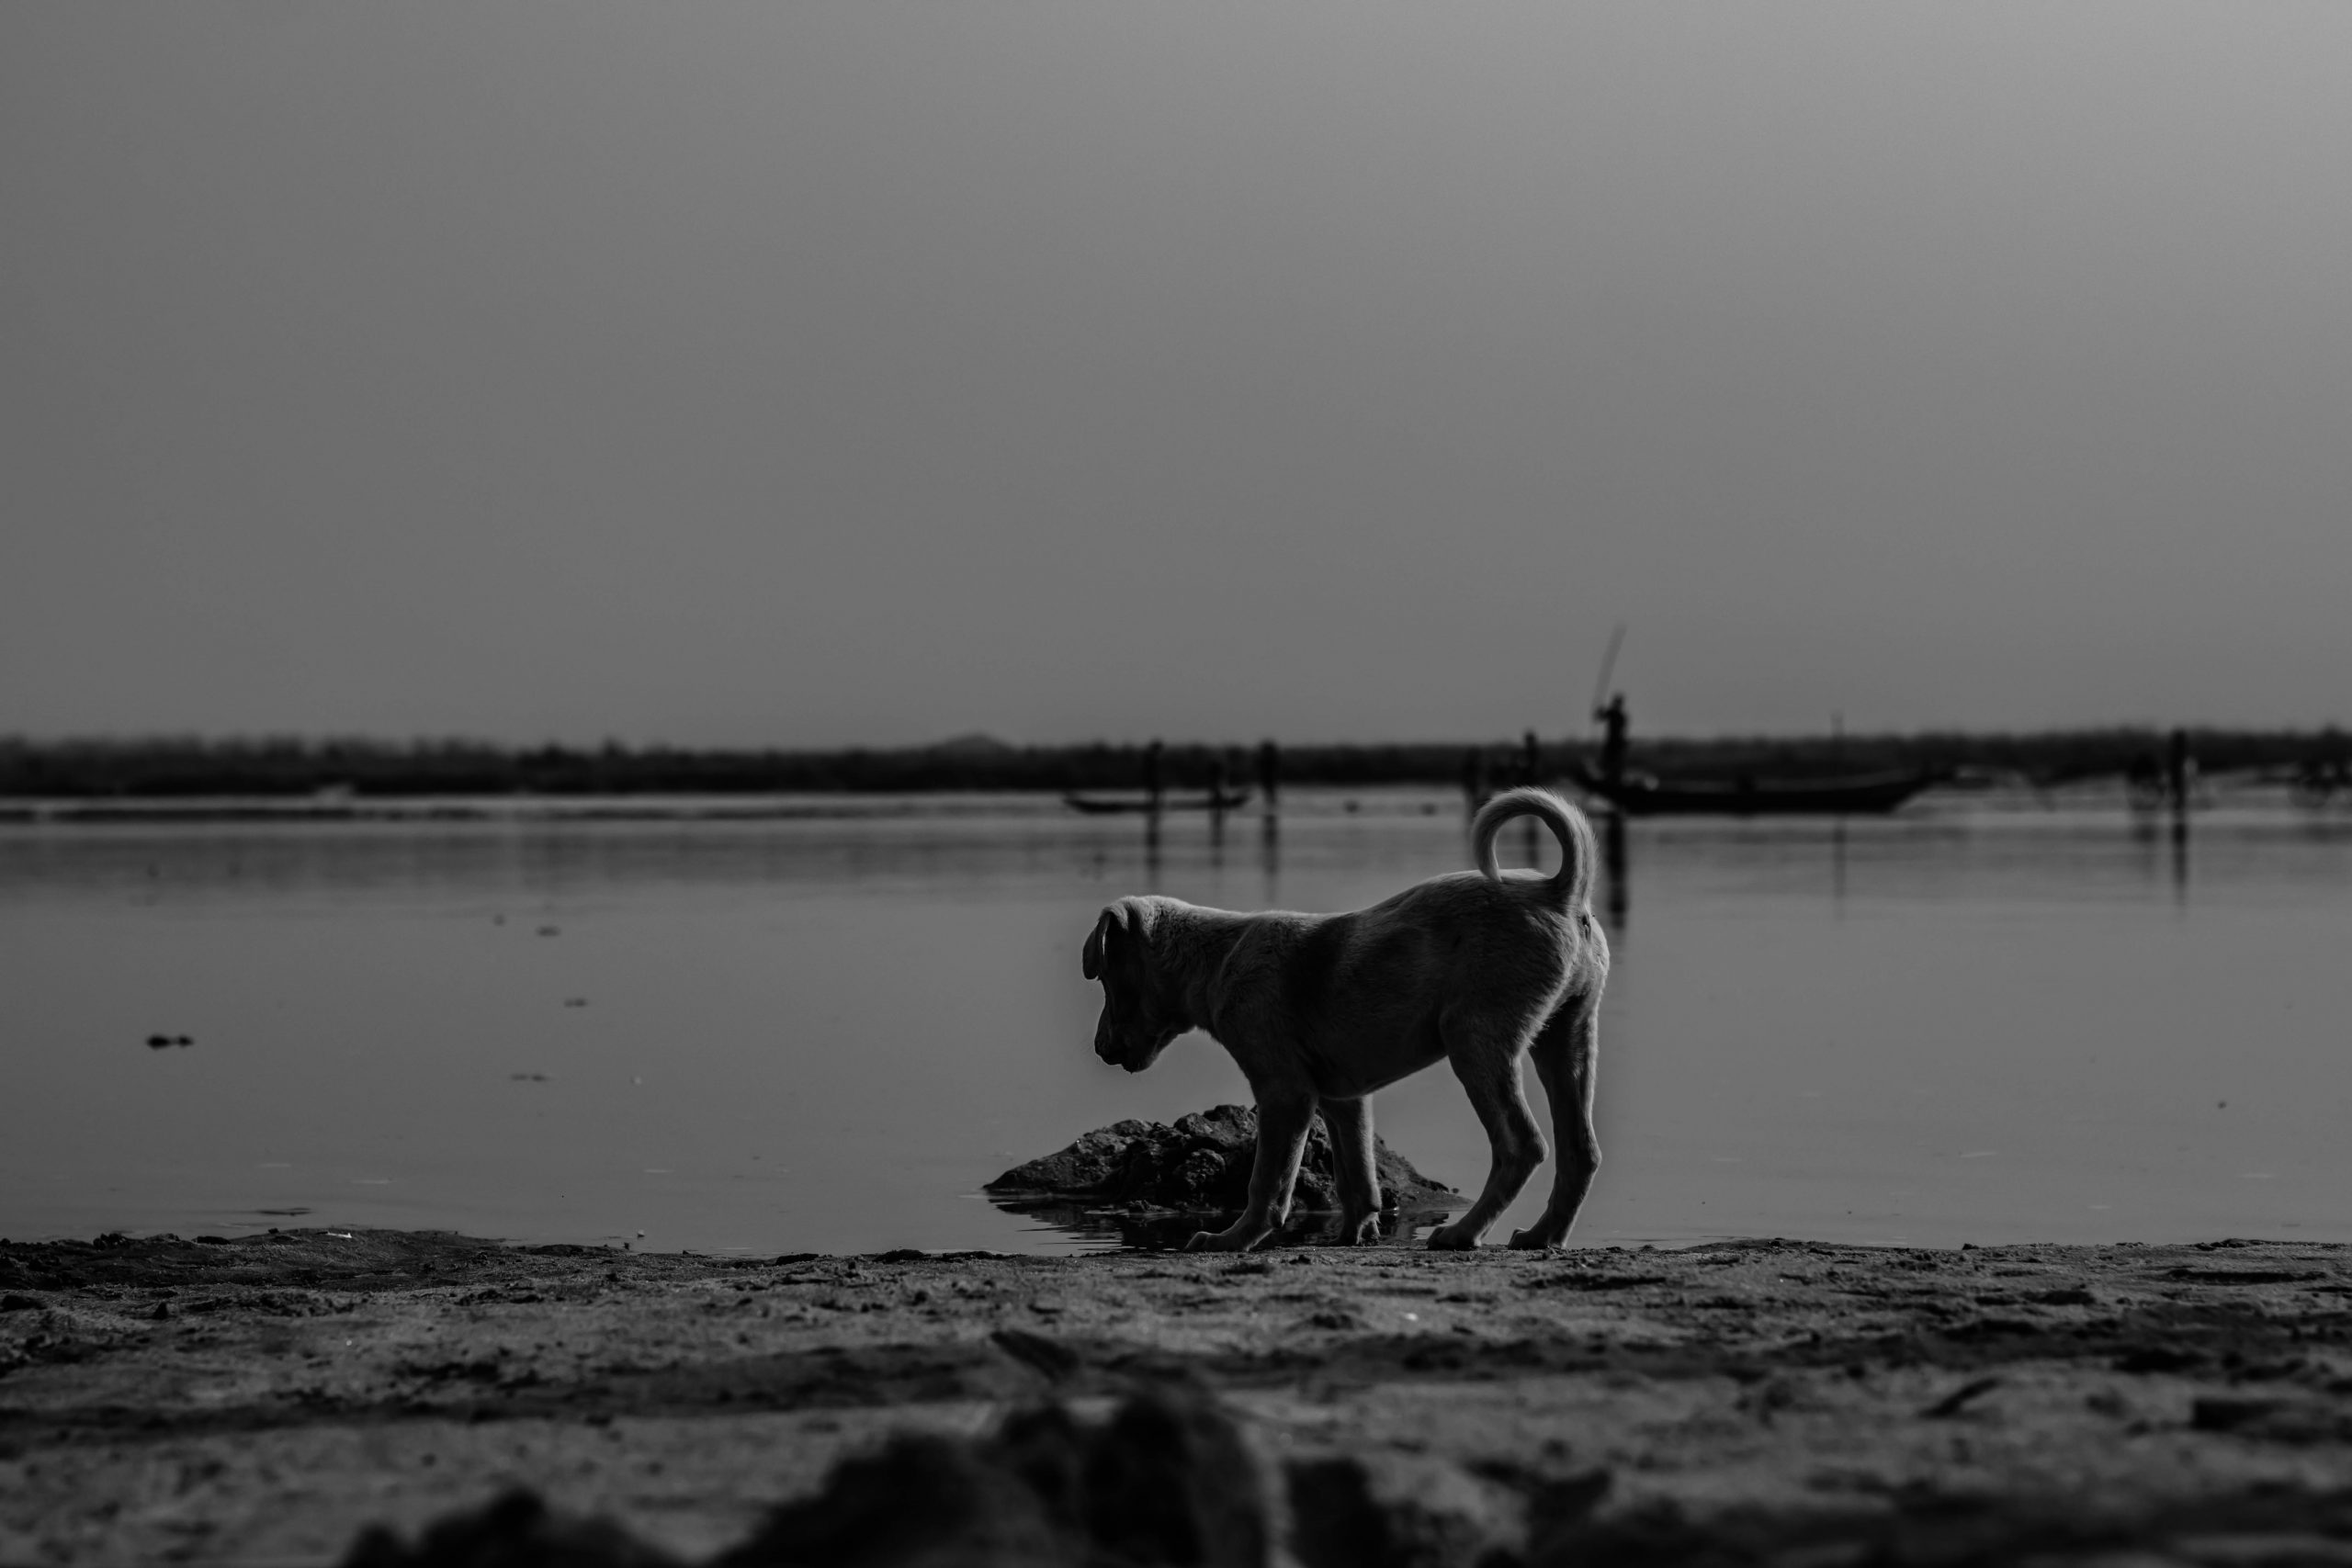 Puppy near the river